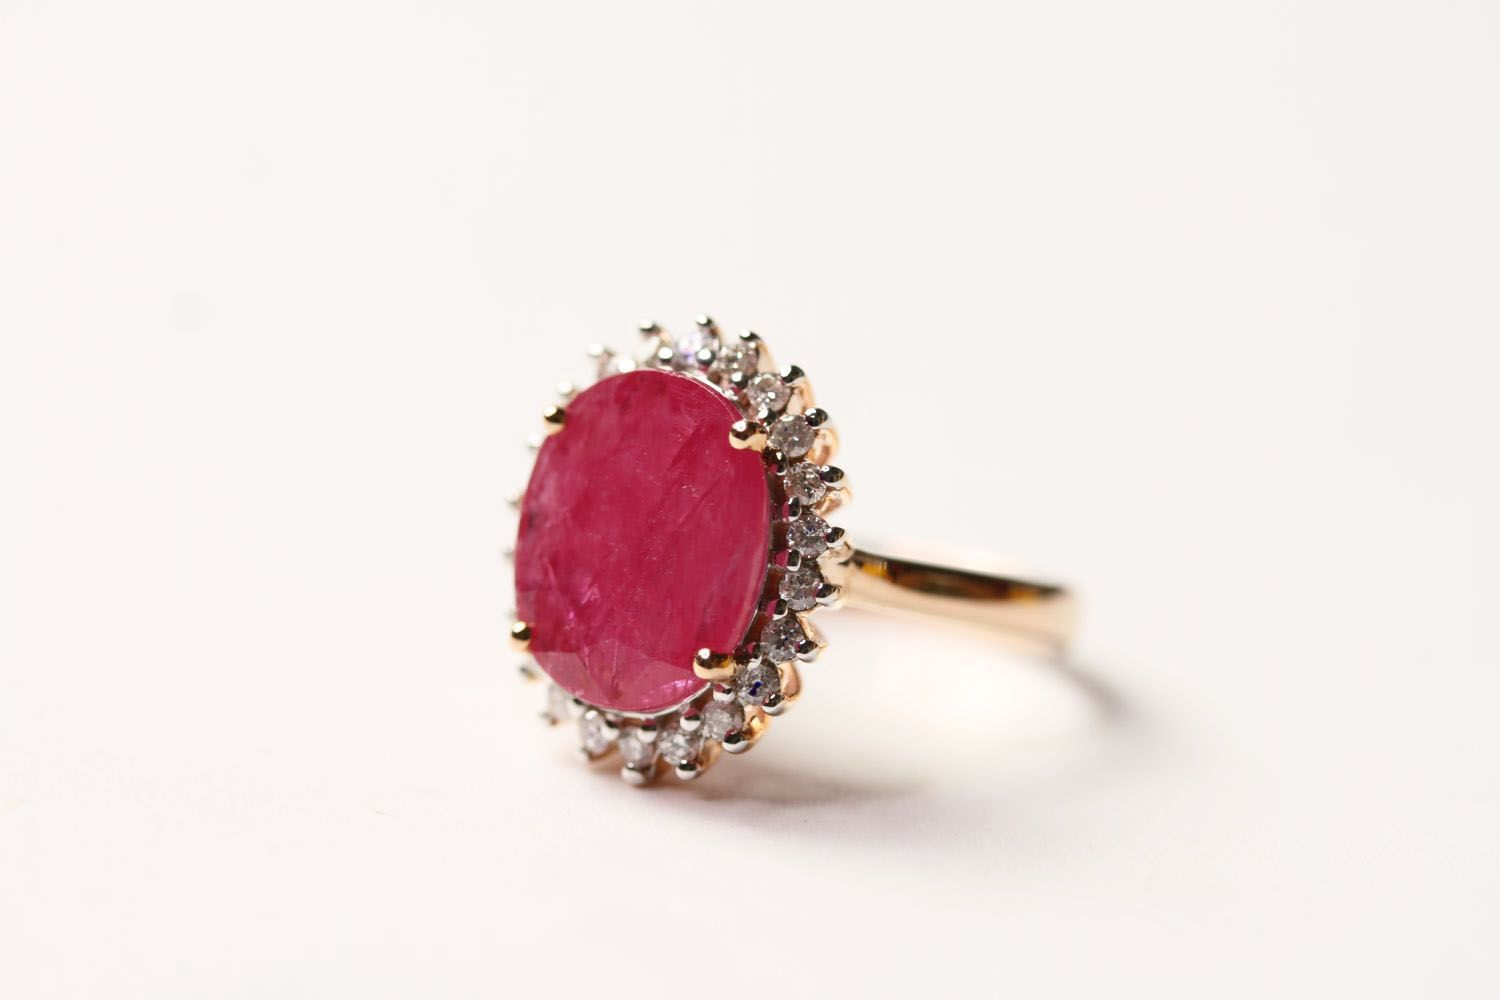 Ruby & Diamond Cluster Ring, set with an oval cut natural ruby 3.36ct, surrounded by 22 round